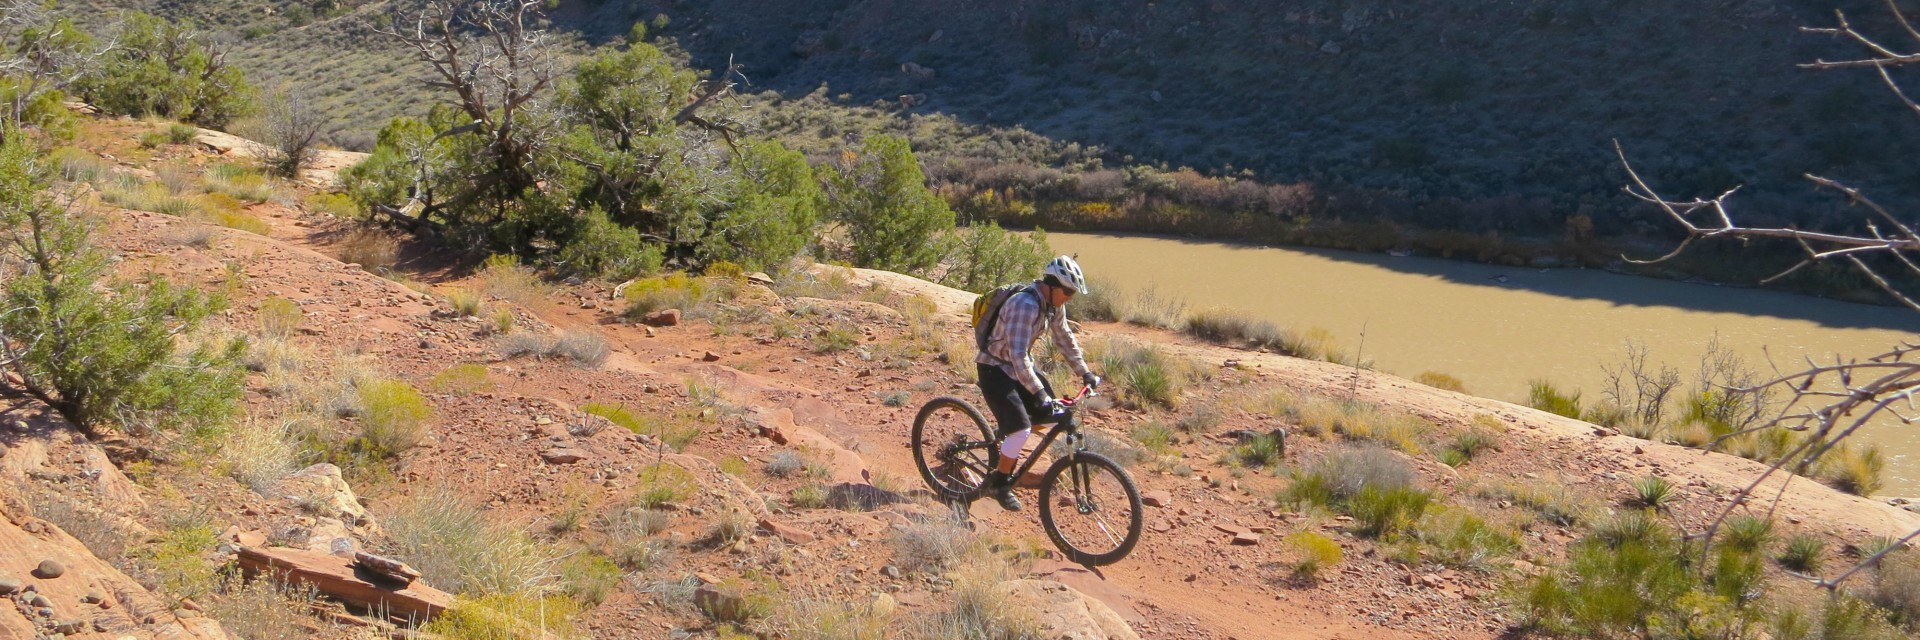 Mountain bike rider traverses a bench above the Colorado River on singletrack just outside Fruita, CO